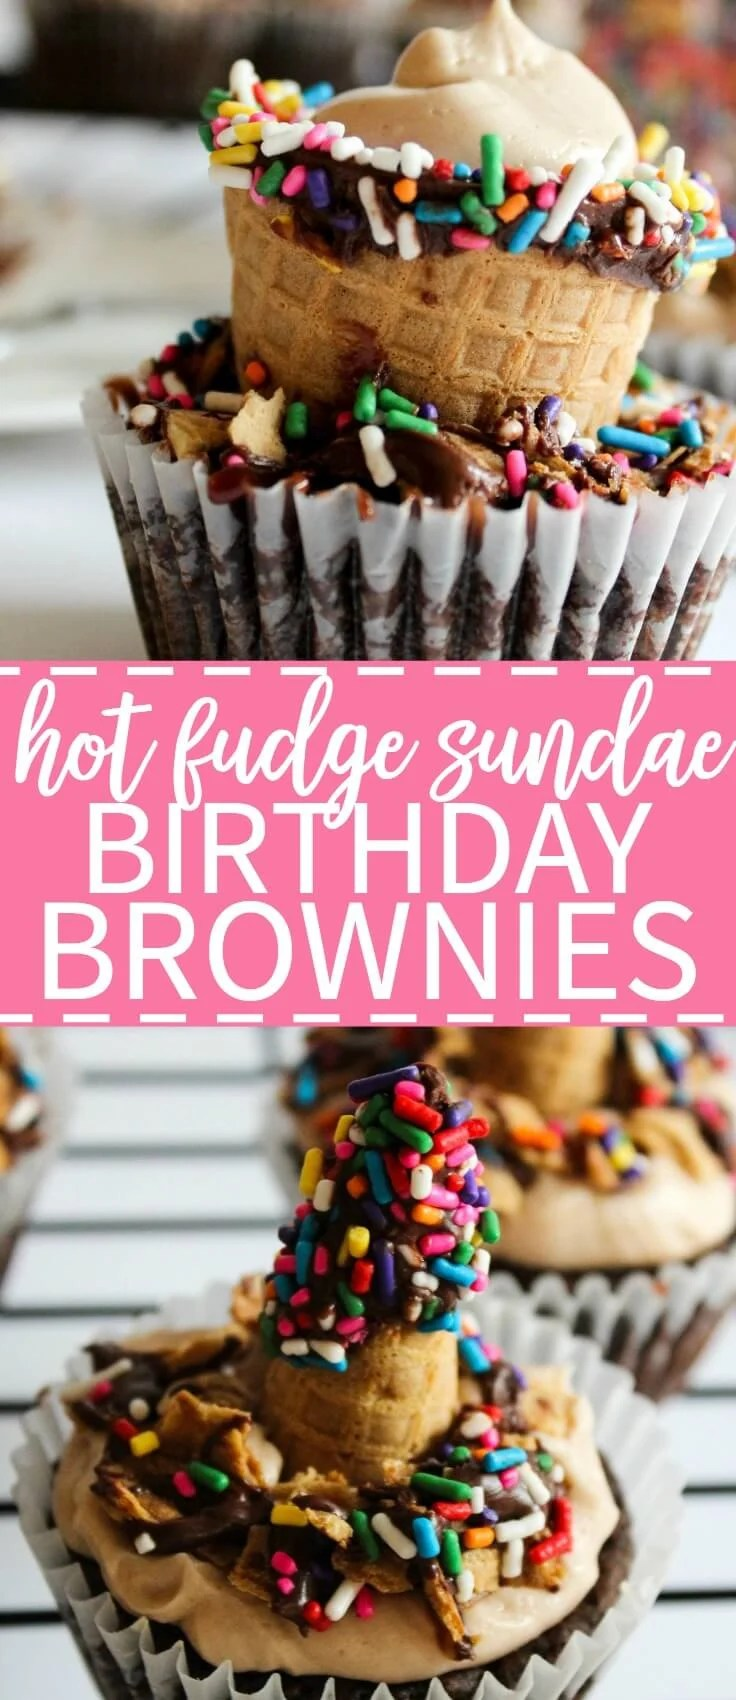 Hot fudge sundae birthday brownies! These festive brownies are the best chocolate dessert to celebrate your loved ones.